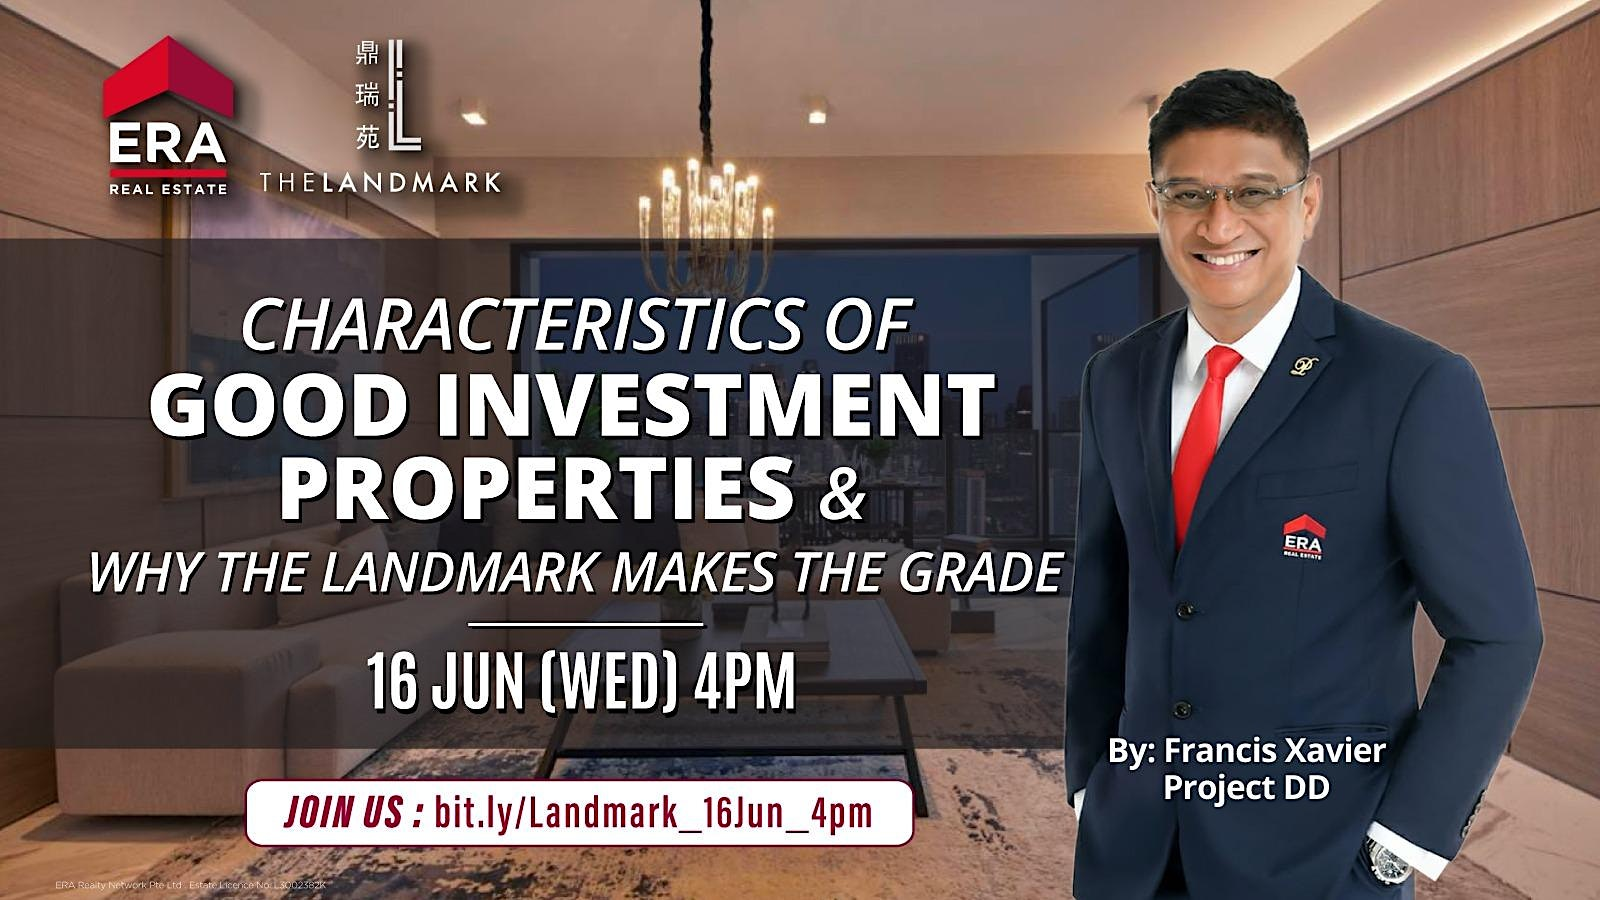 Characteristics of Good Investment Properties & Why The Landmark Makes the